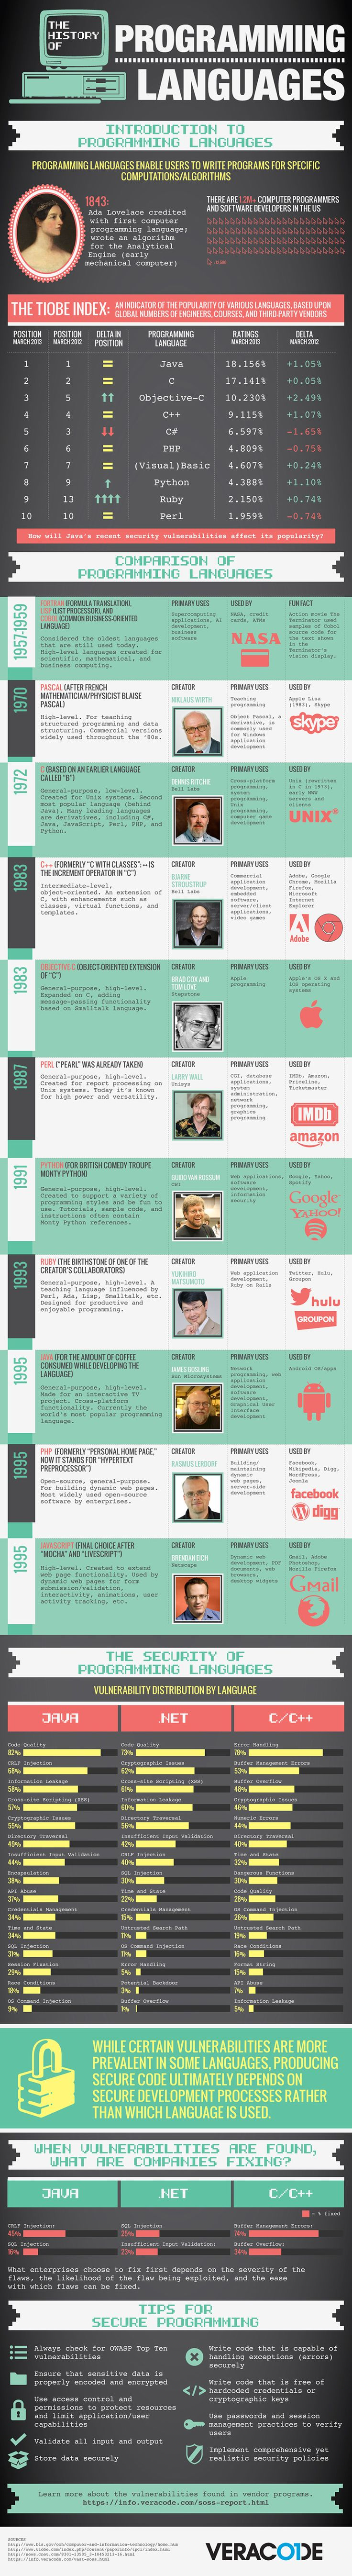 History Of Programming Languages #infographic